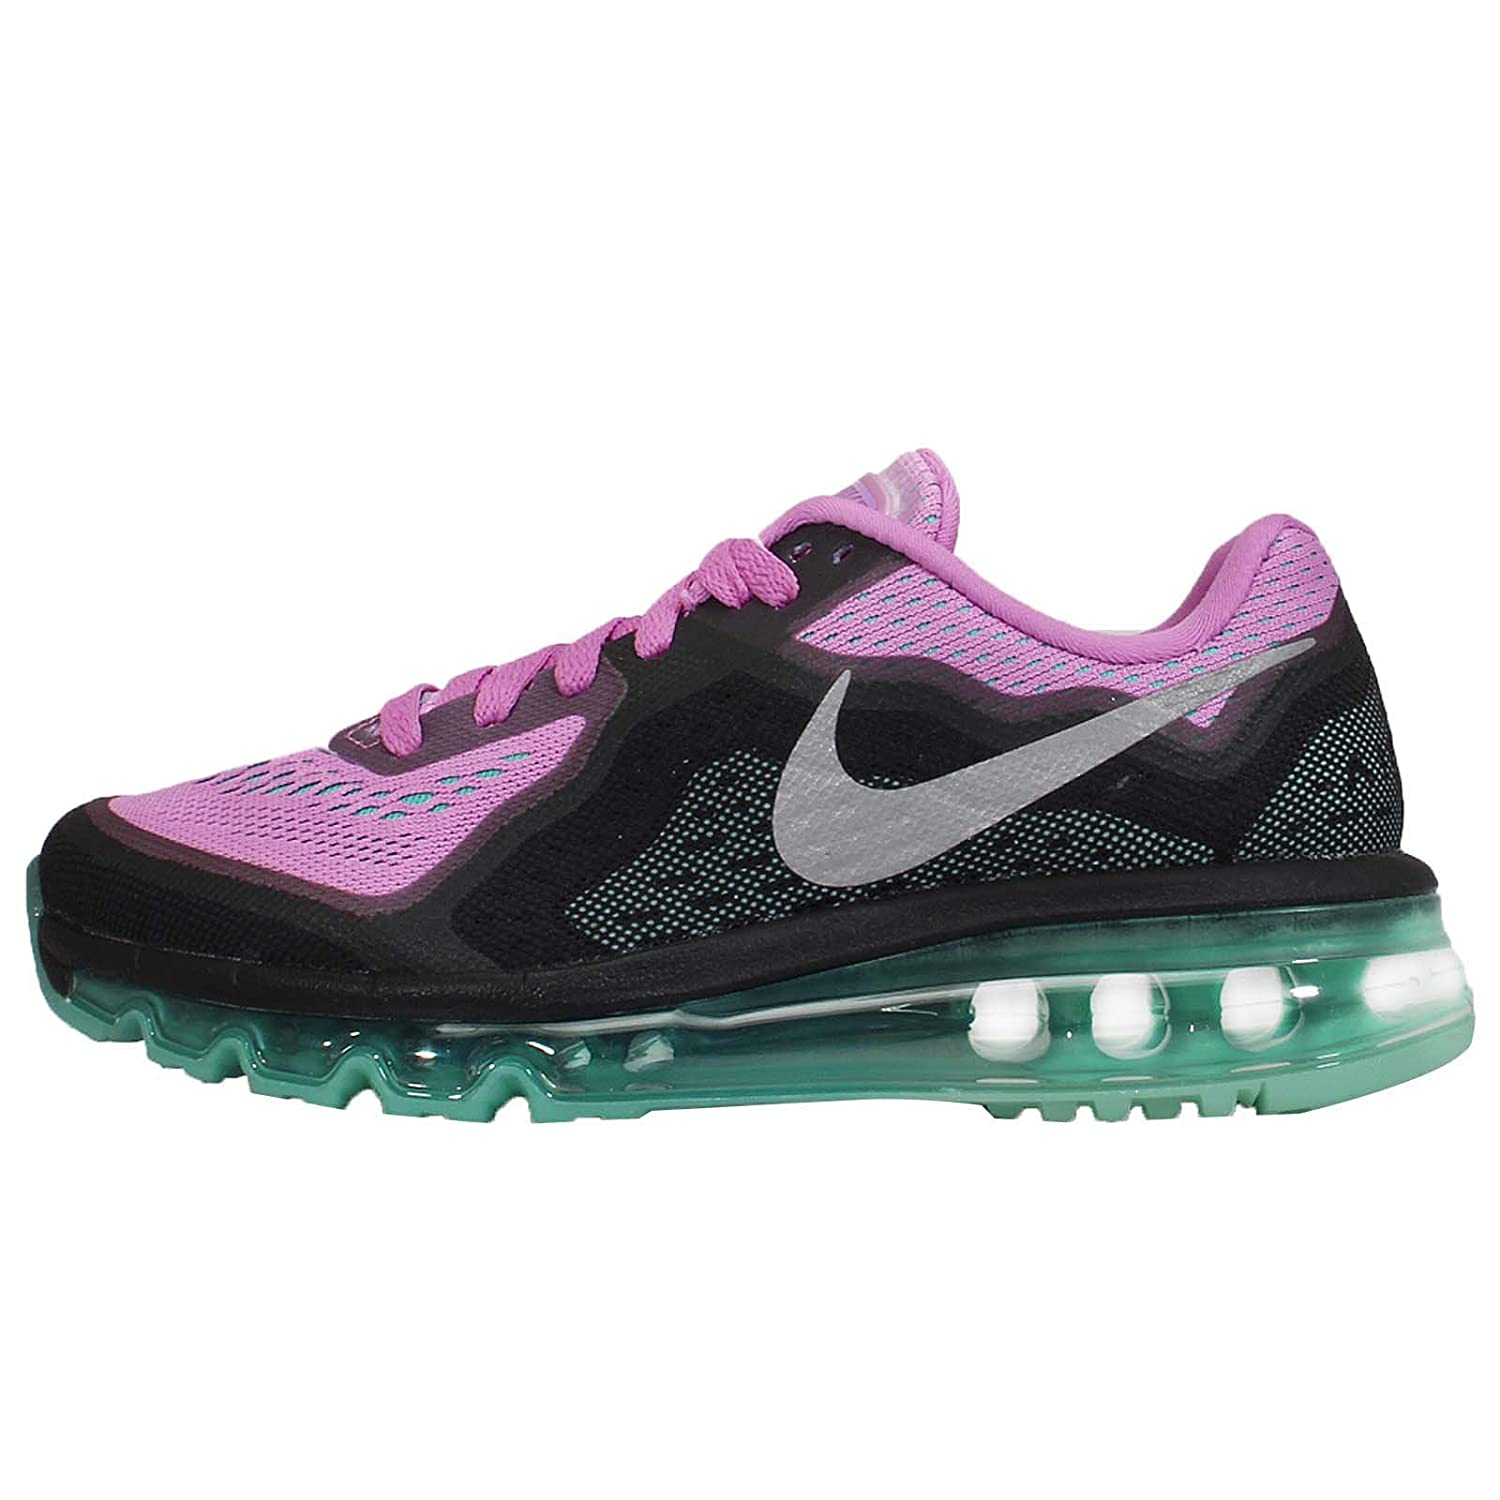 Nike Women's Wmns Air Max 2014, LT MAGENTA/REFLECTIVE SILVER-HYPER TURQUOISE  lovely